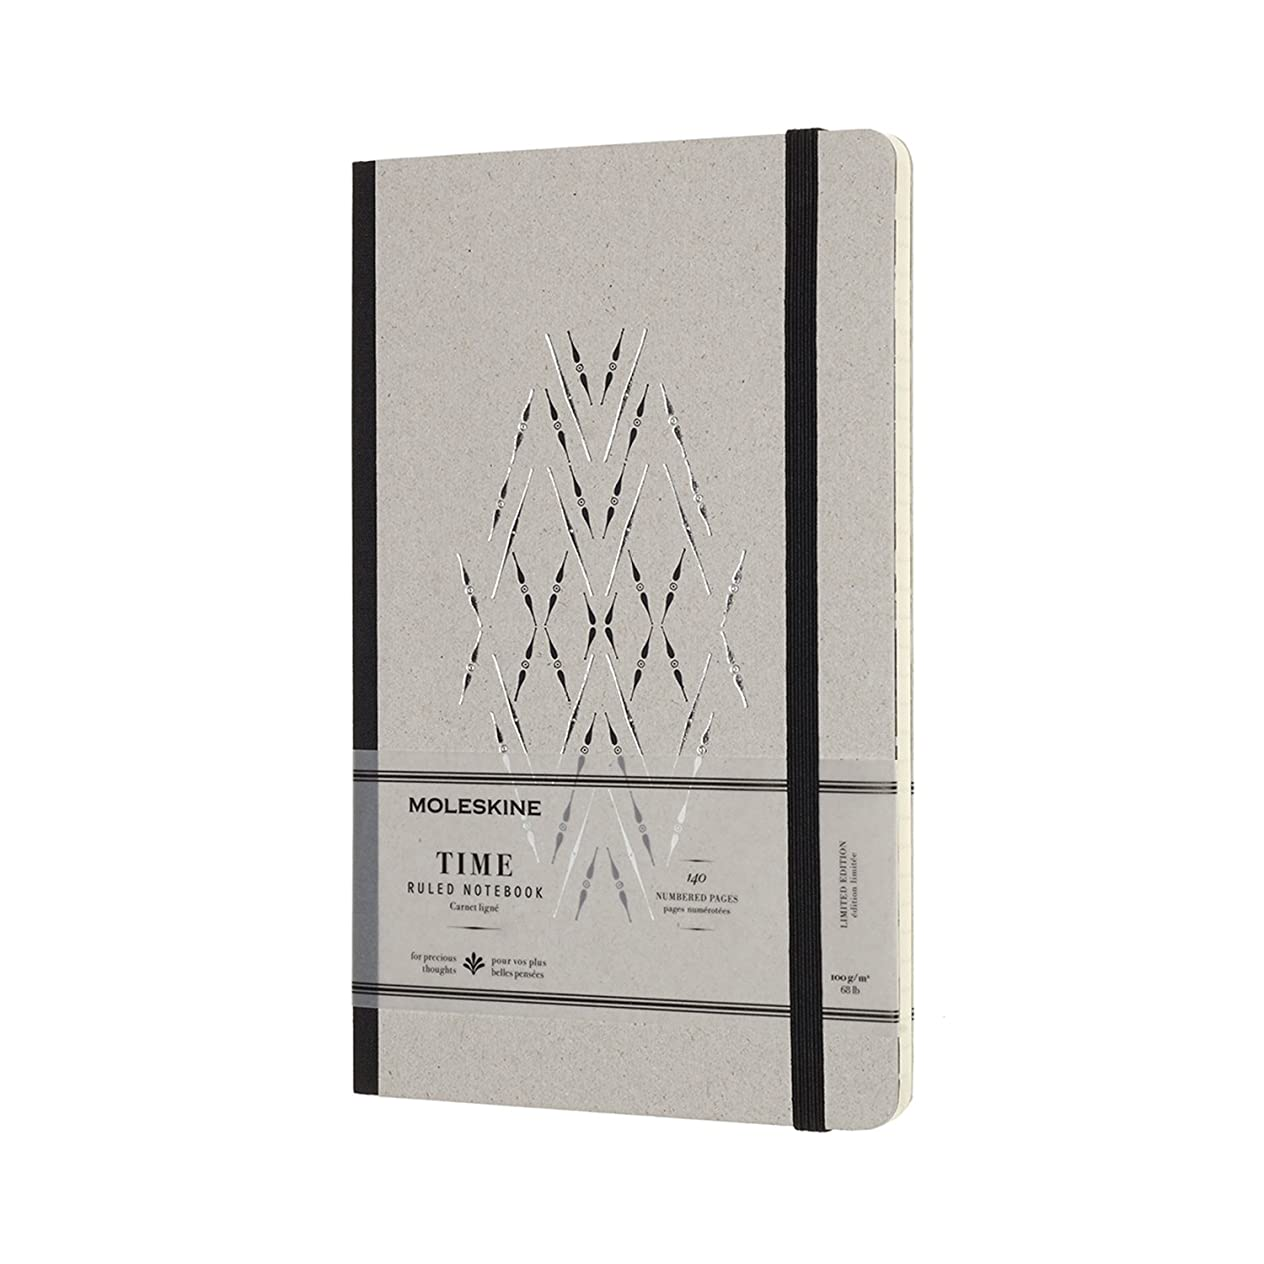 Moleskine Limited Collection Time Notebook, Large, Ruled, Black, Hard Cover (5 x 8.25)